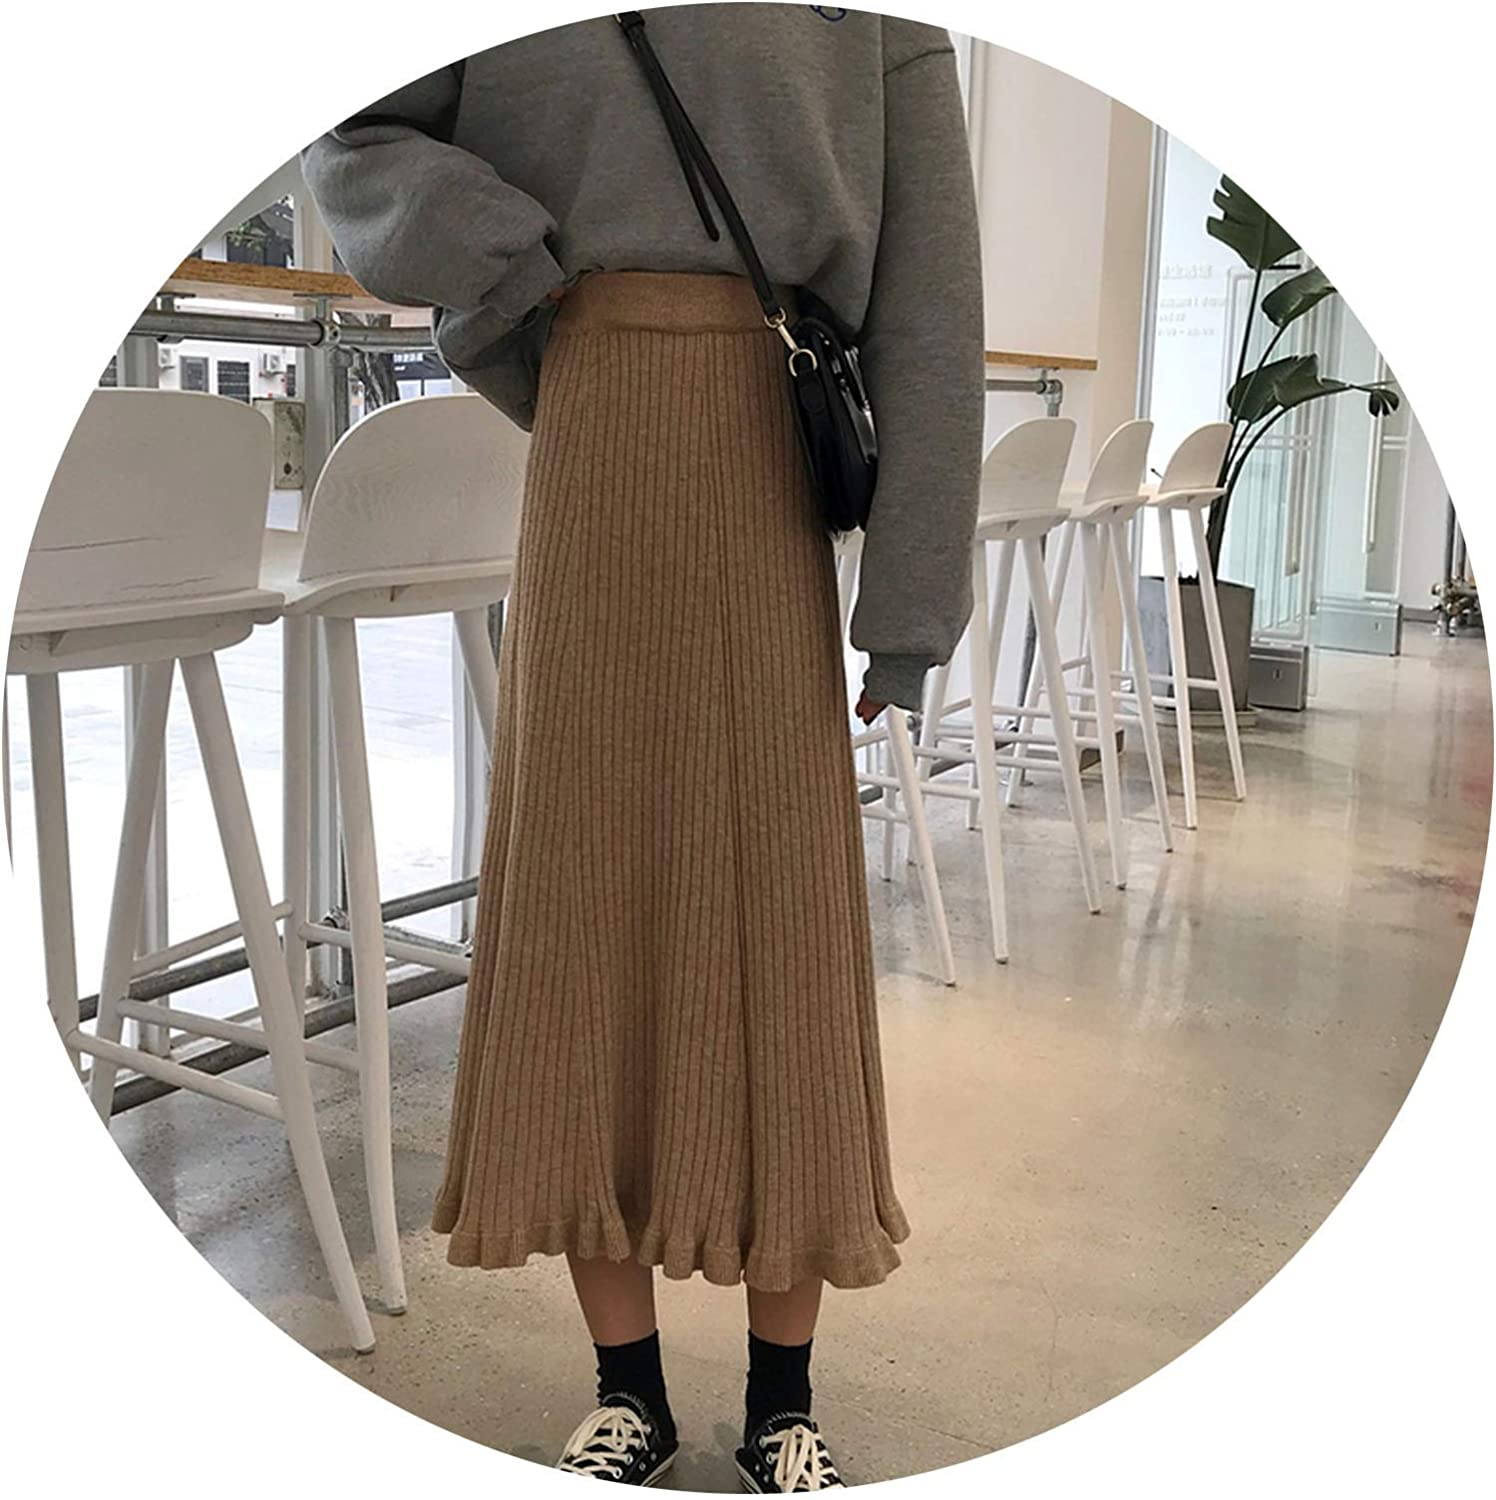 2 colors Mihoshop Ulzzang Korean Korea Women Fashion Clothing Spring High Waist Casual Preppy Student Preppy Khika Black Skirts,See chart1,One Size